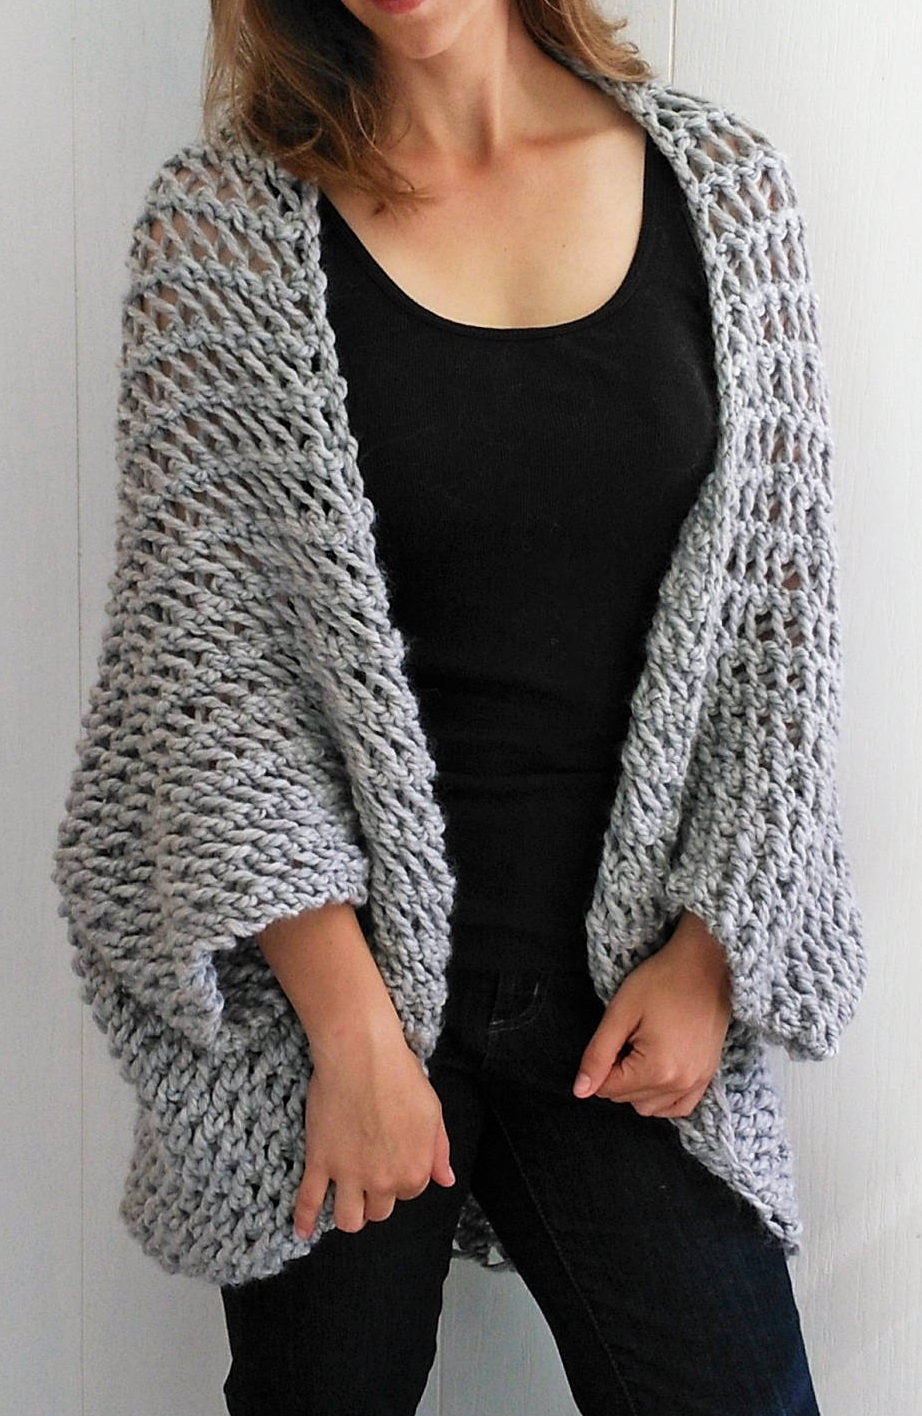 Unique Easy Cardigan Knitting Patterns Free Cardigan Knitting Patterns Of Top 49 Images Free Cardigan Knitting Patterns